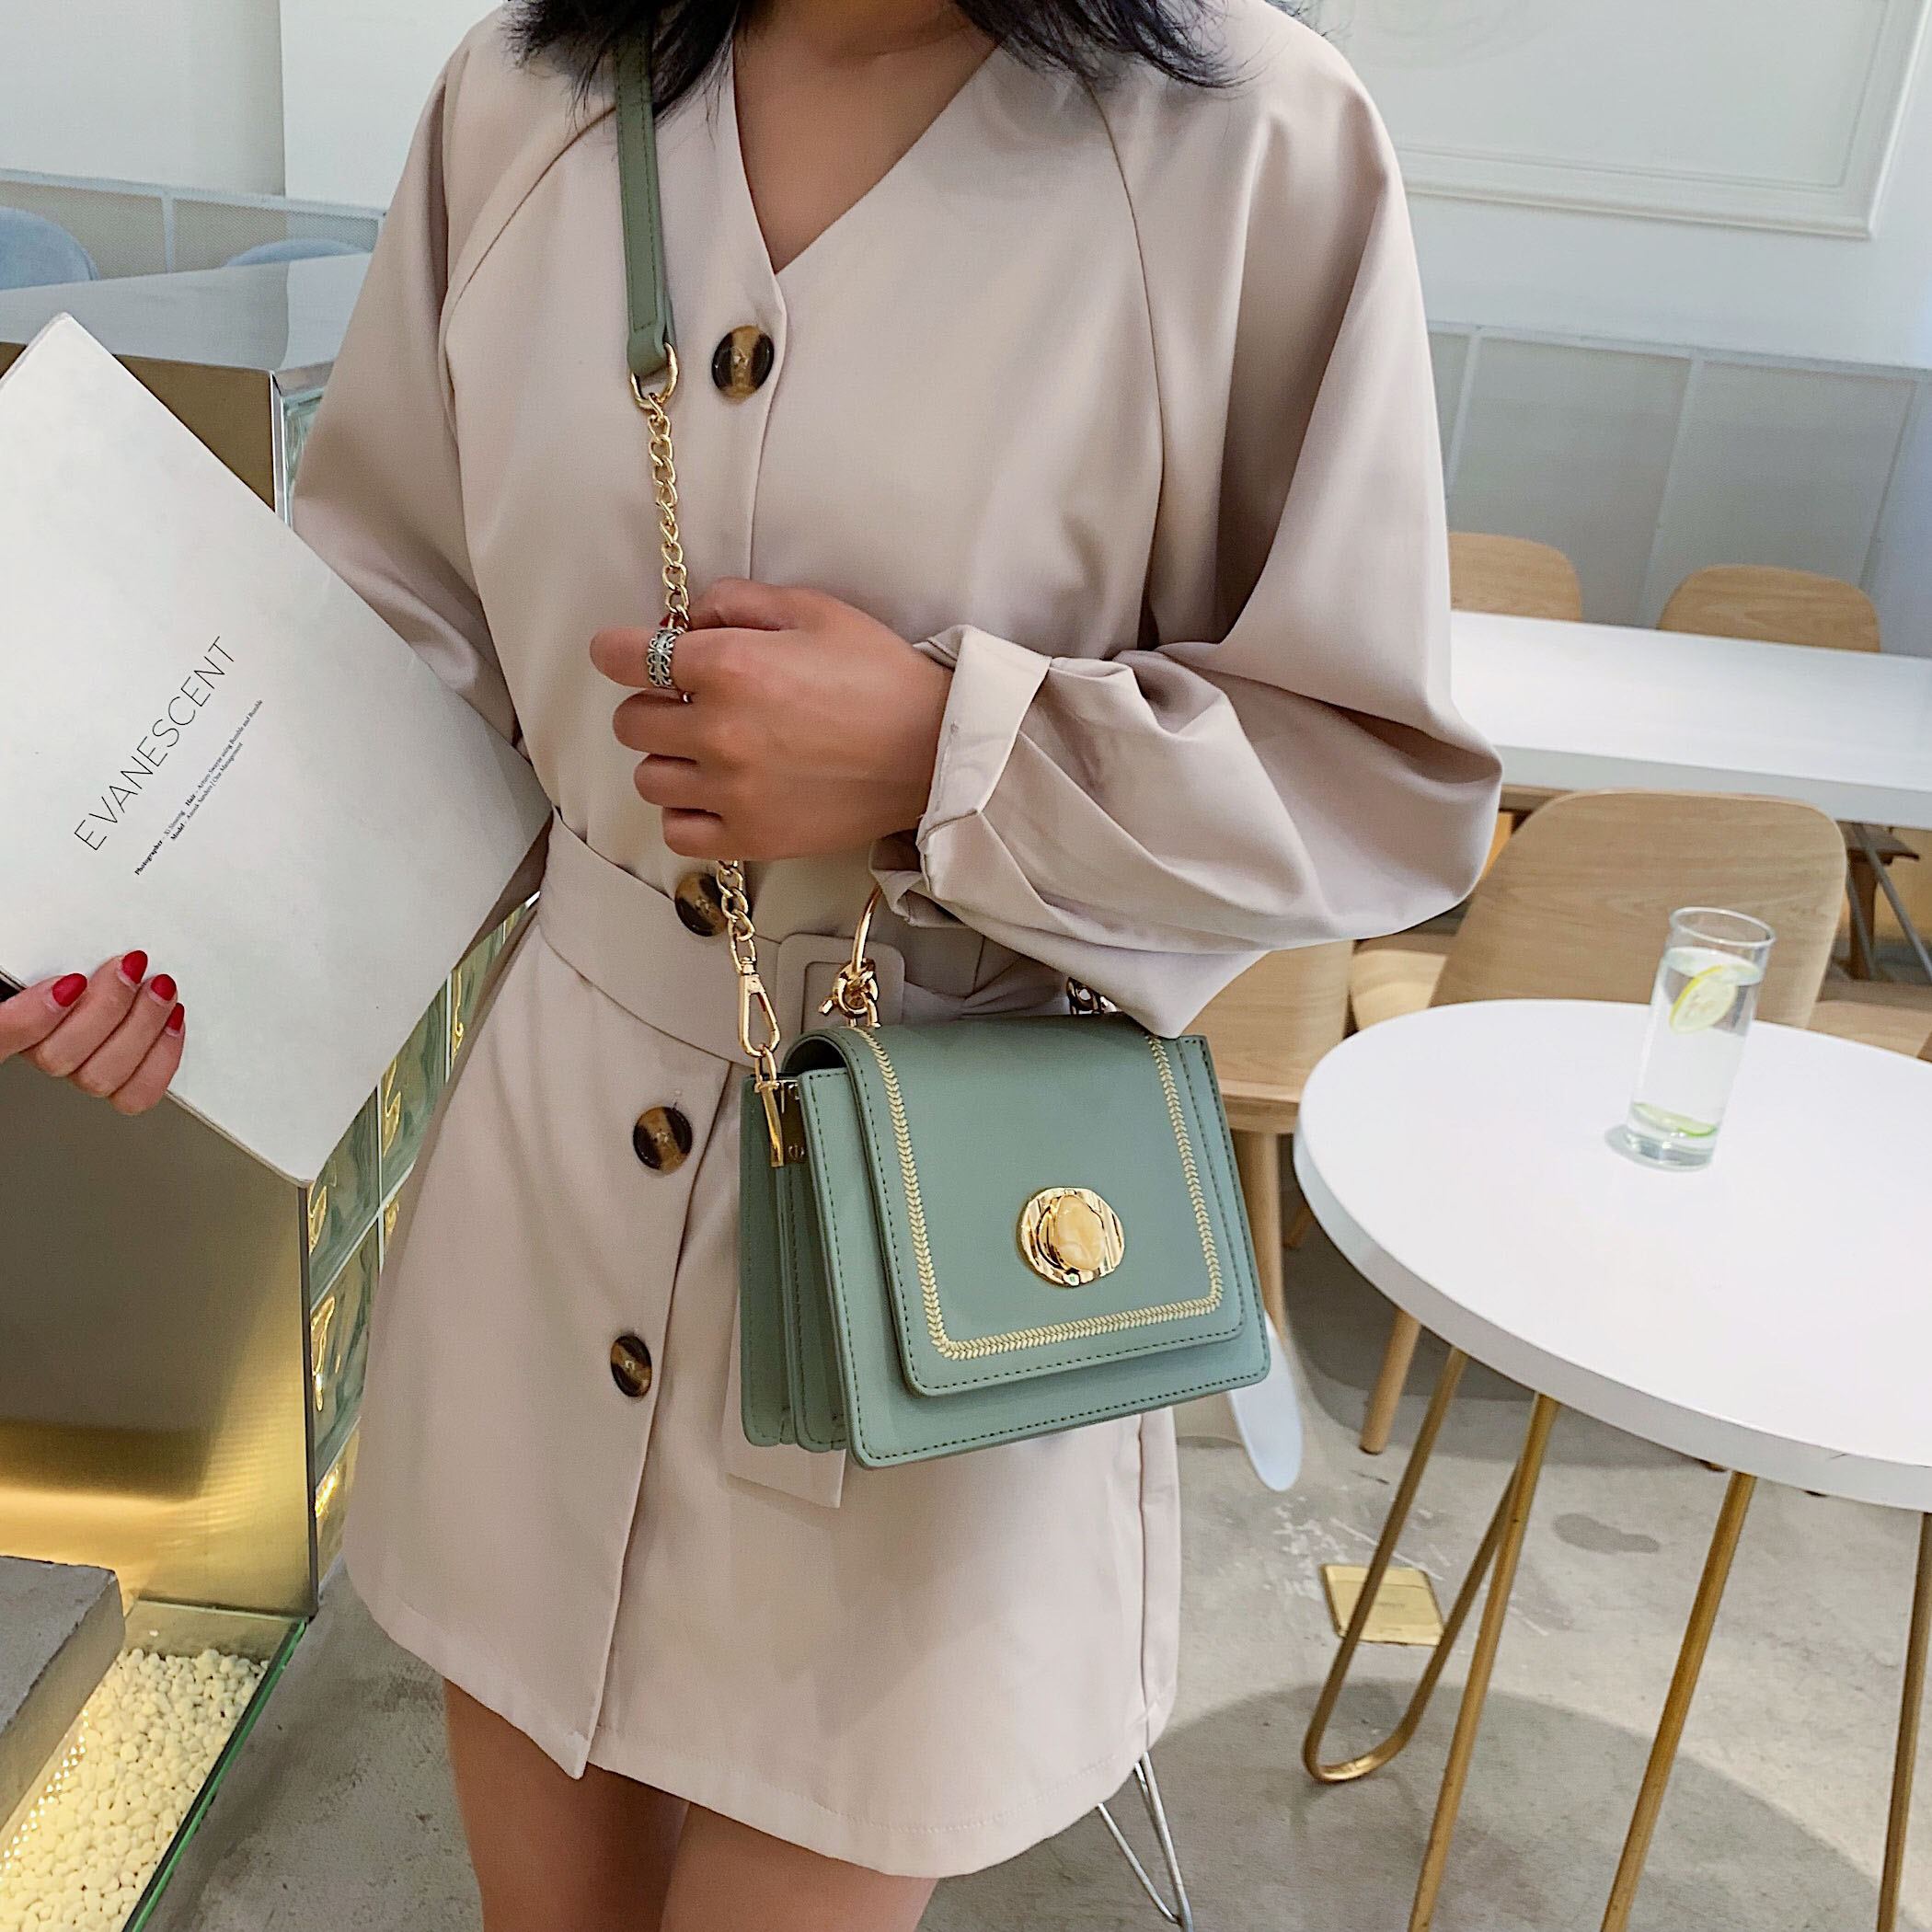 Image 2 - Solid color Leather Mini Crossbody Bags For Women 2019 Summer Messenger Shoulder Bag Female Travel Phone Purses and Handbags-in Shoulder Bags from Luggage & Bags